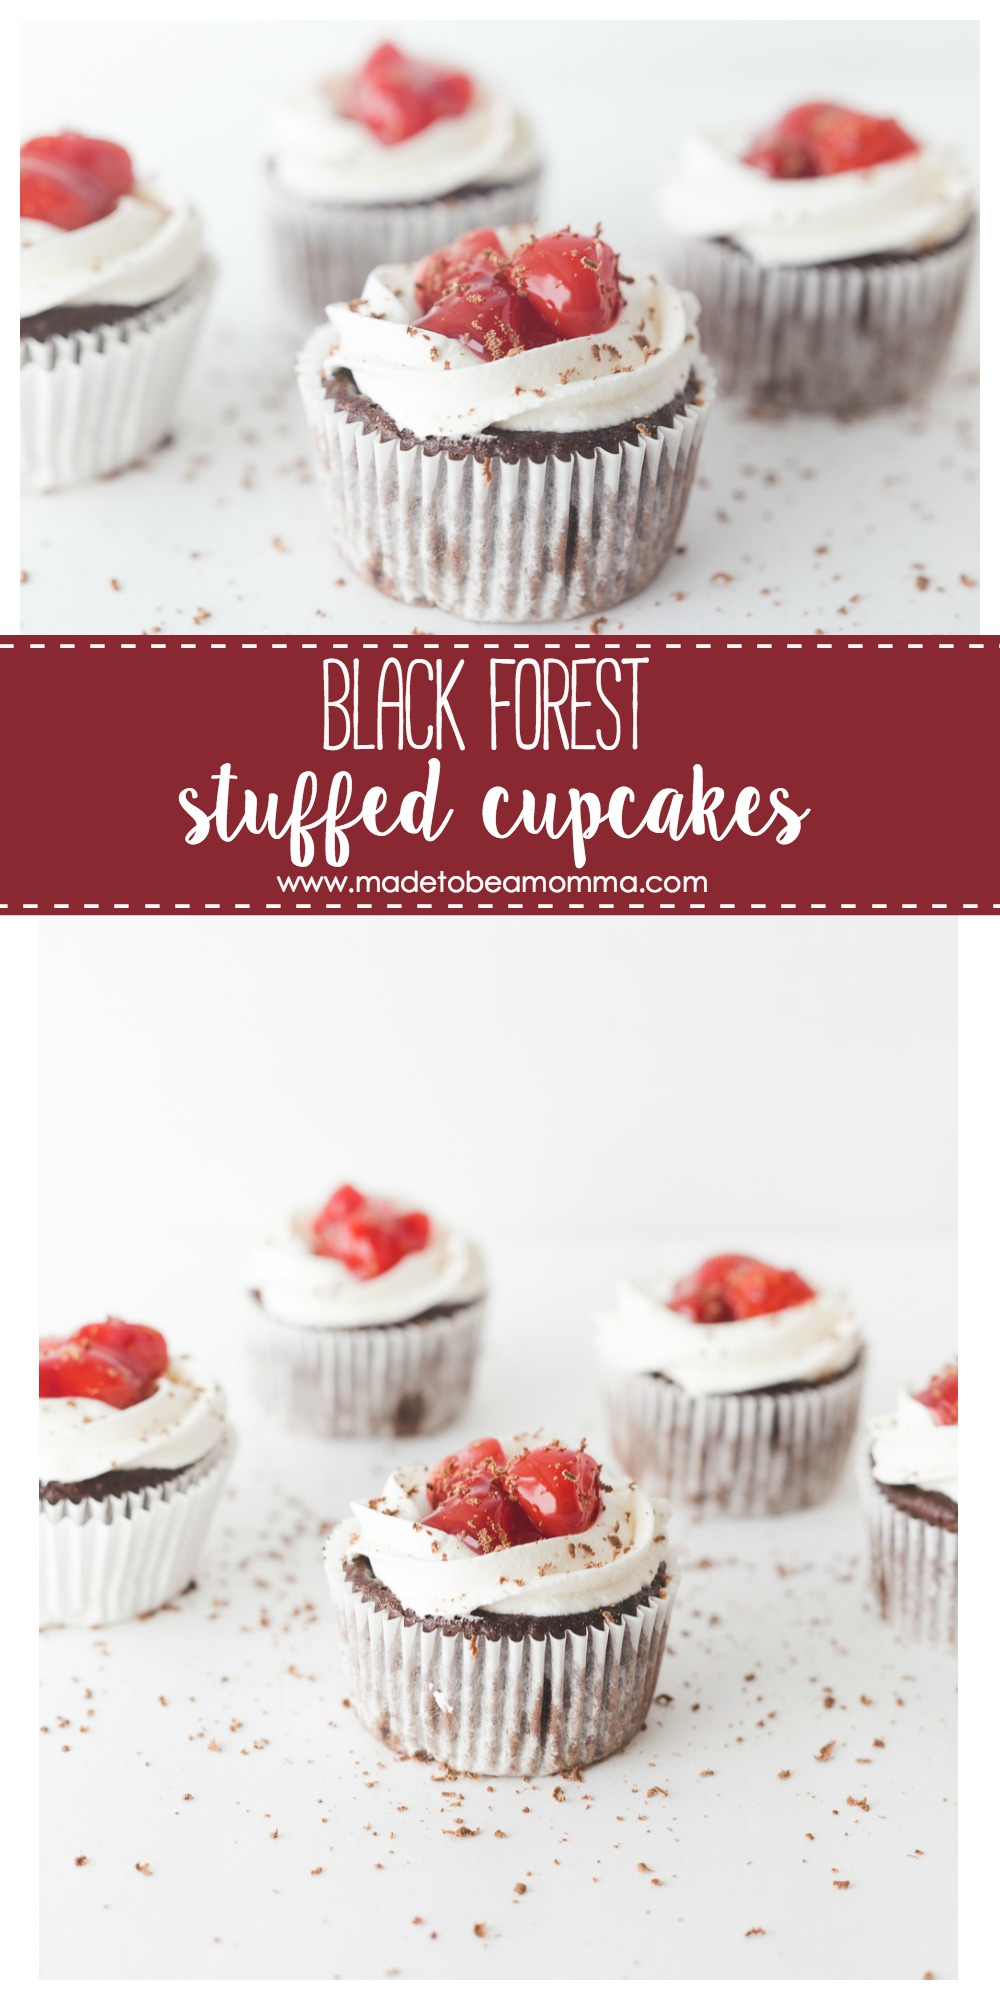 Black Forest Cupcakes: these chocolate cupcakes are stuffed and topped with cherry pie filling and a delicious cream cheese frosting. Great for holiday parties and everyday gatherings. www.madetobeamomma.com